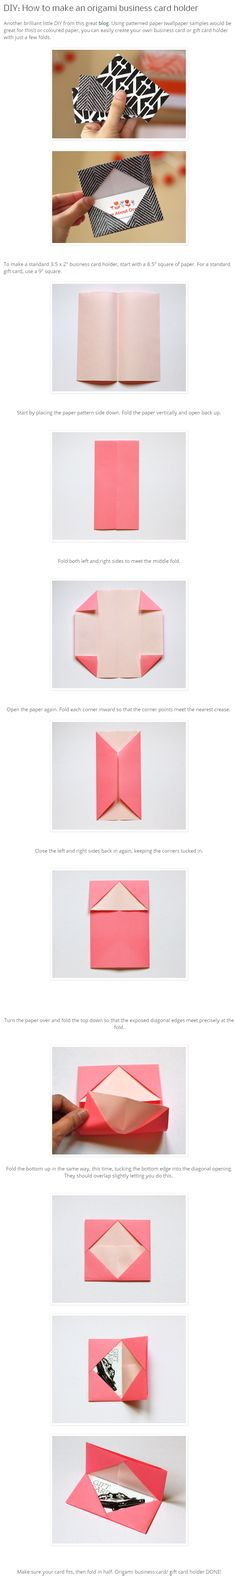 DIY origami business card holder